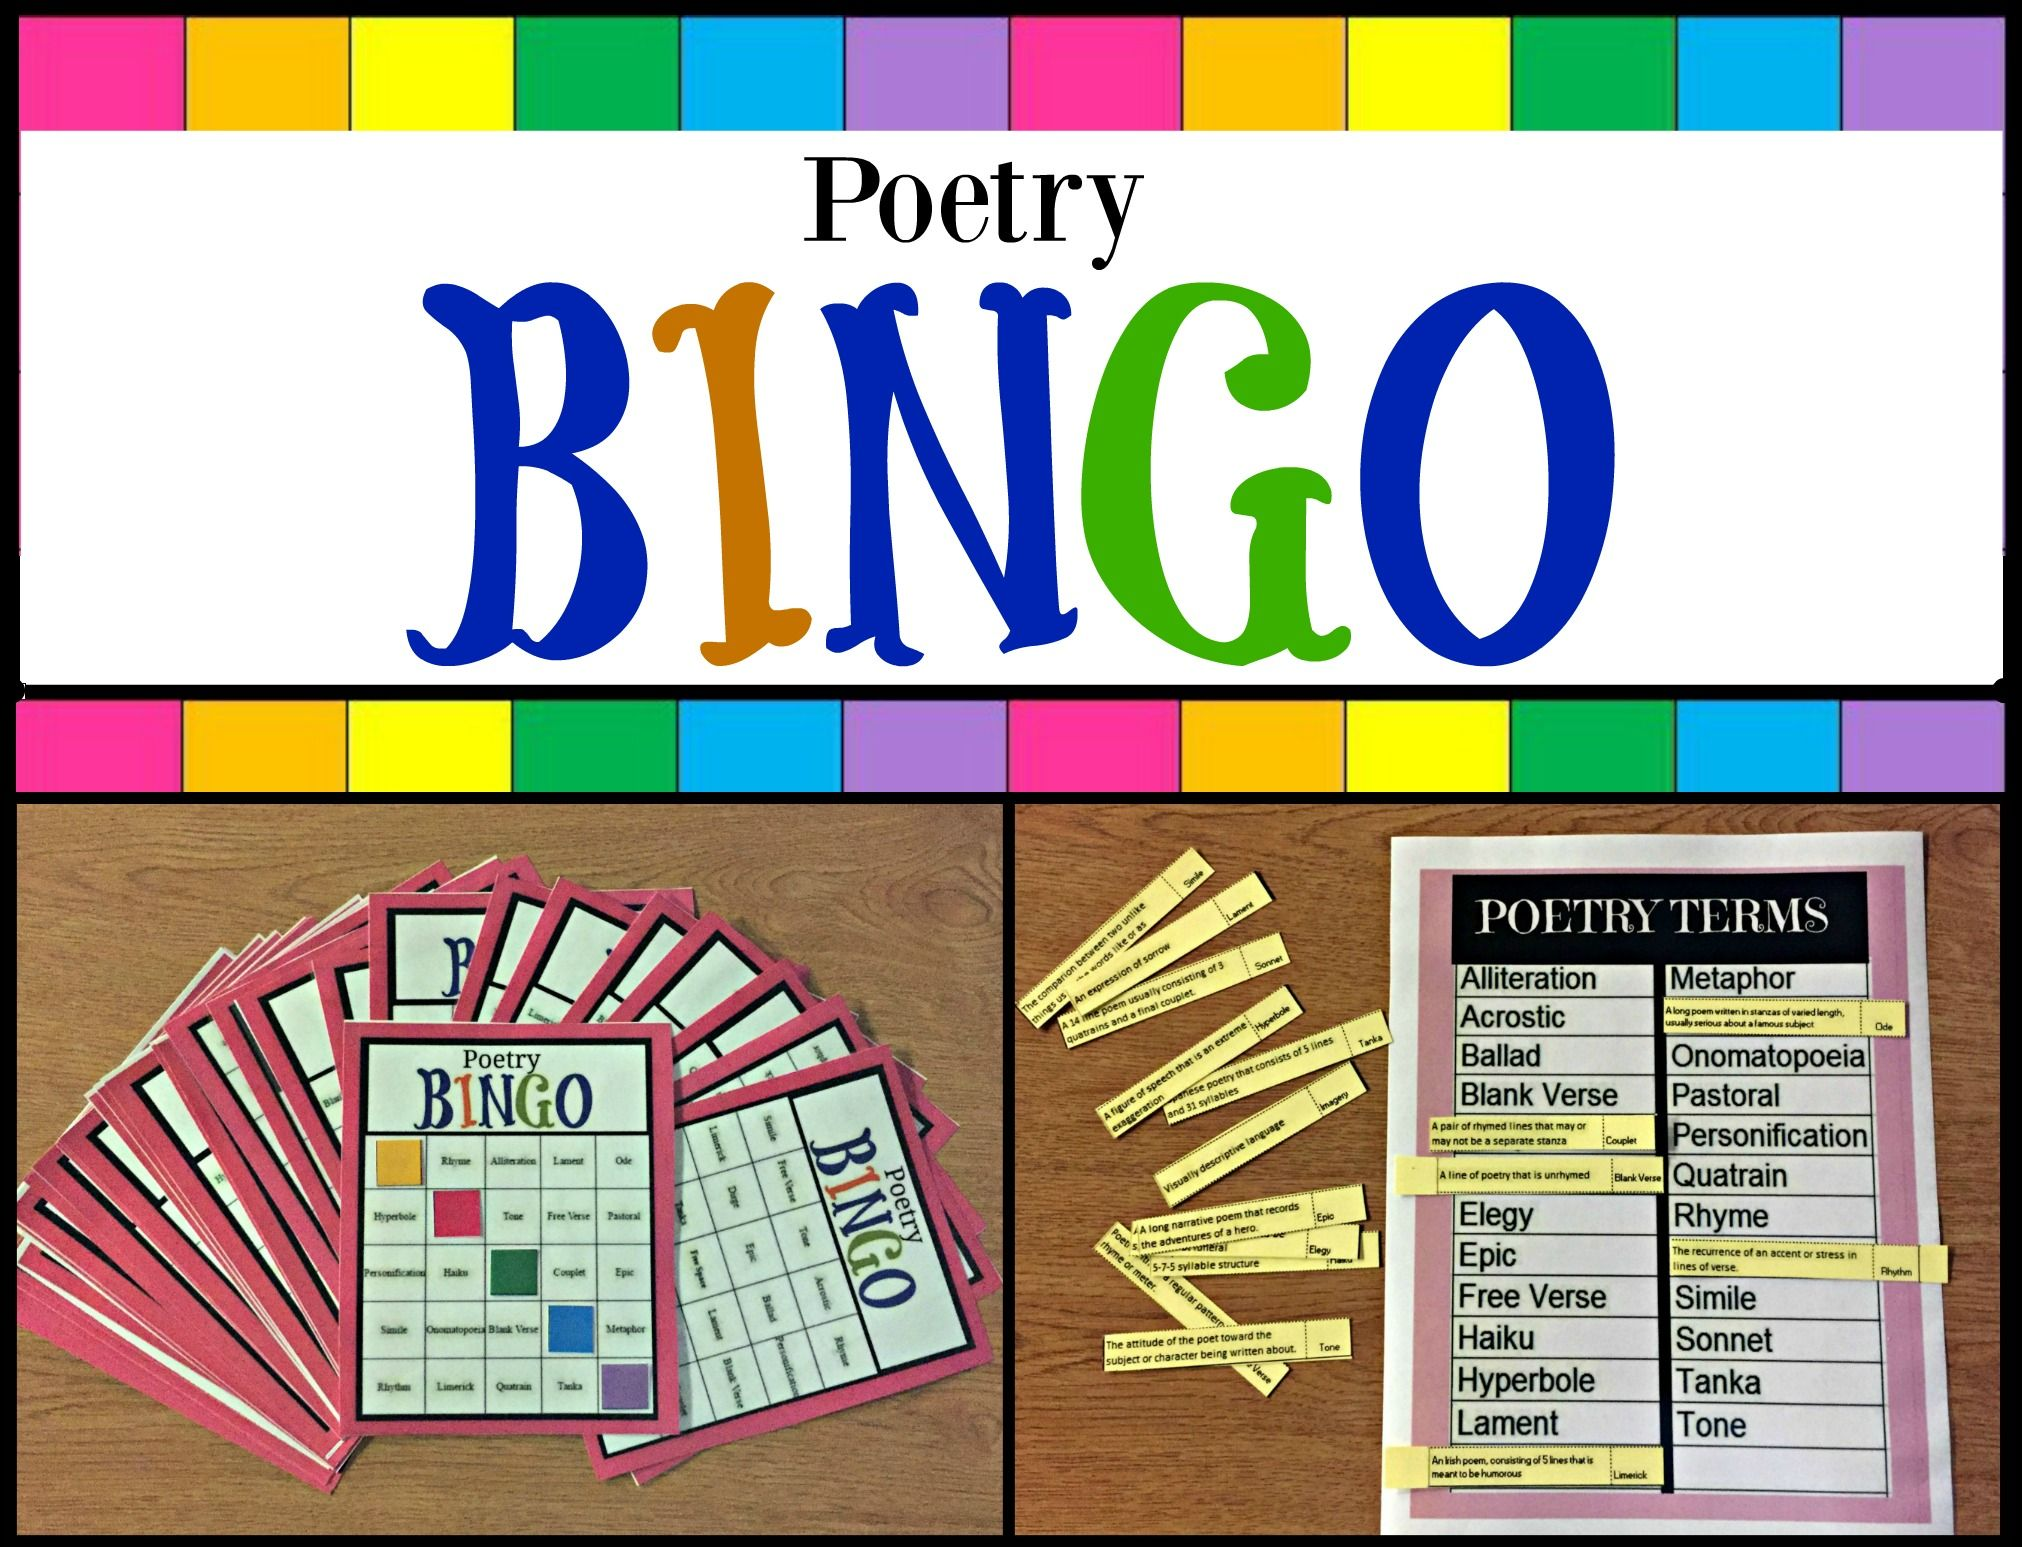 Poetry terms review game, BINGO style. Help students